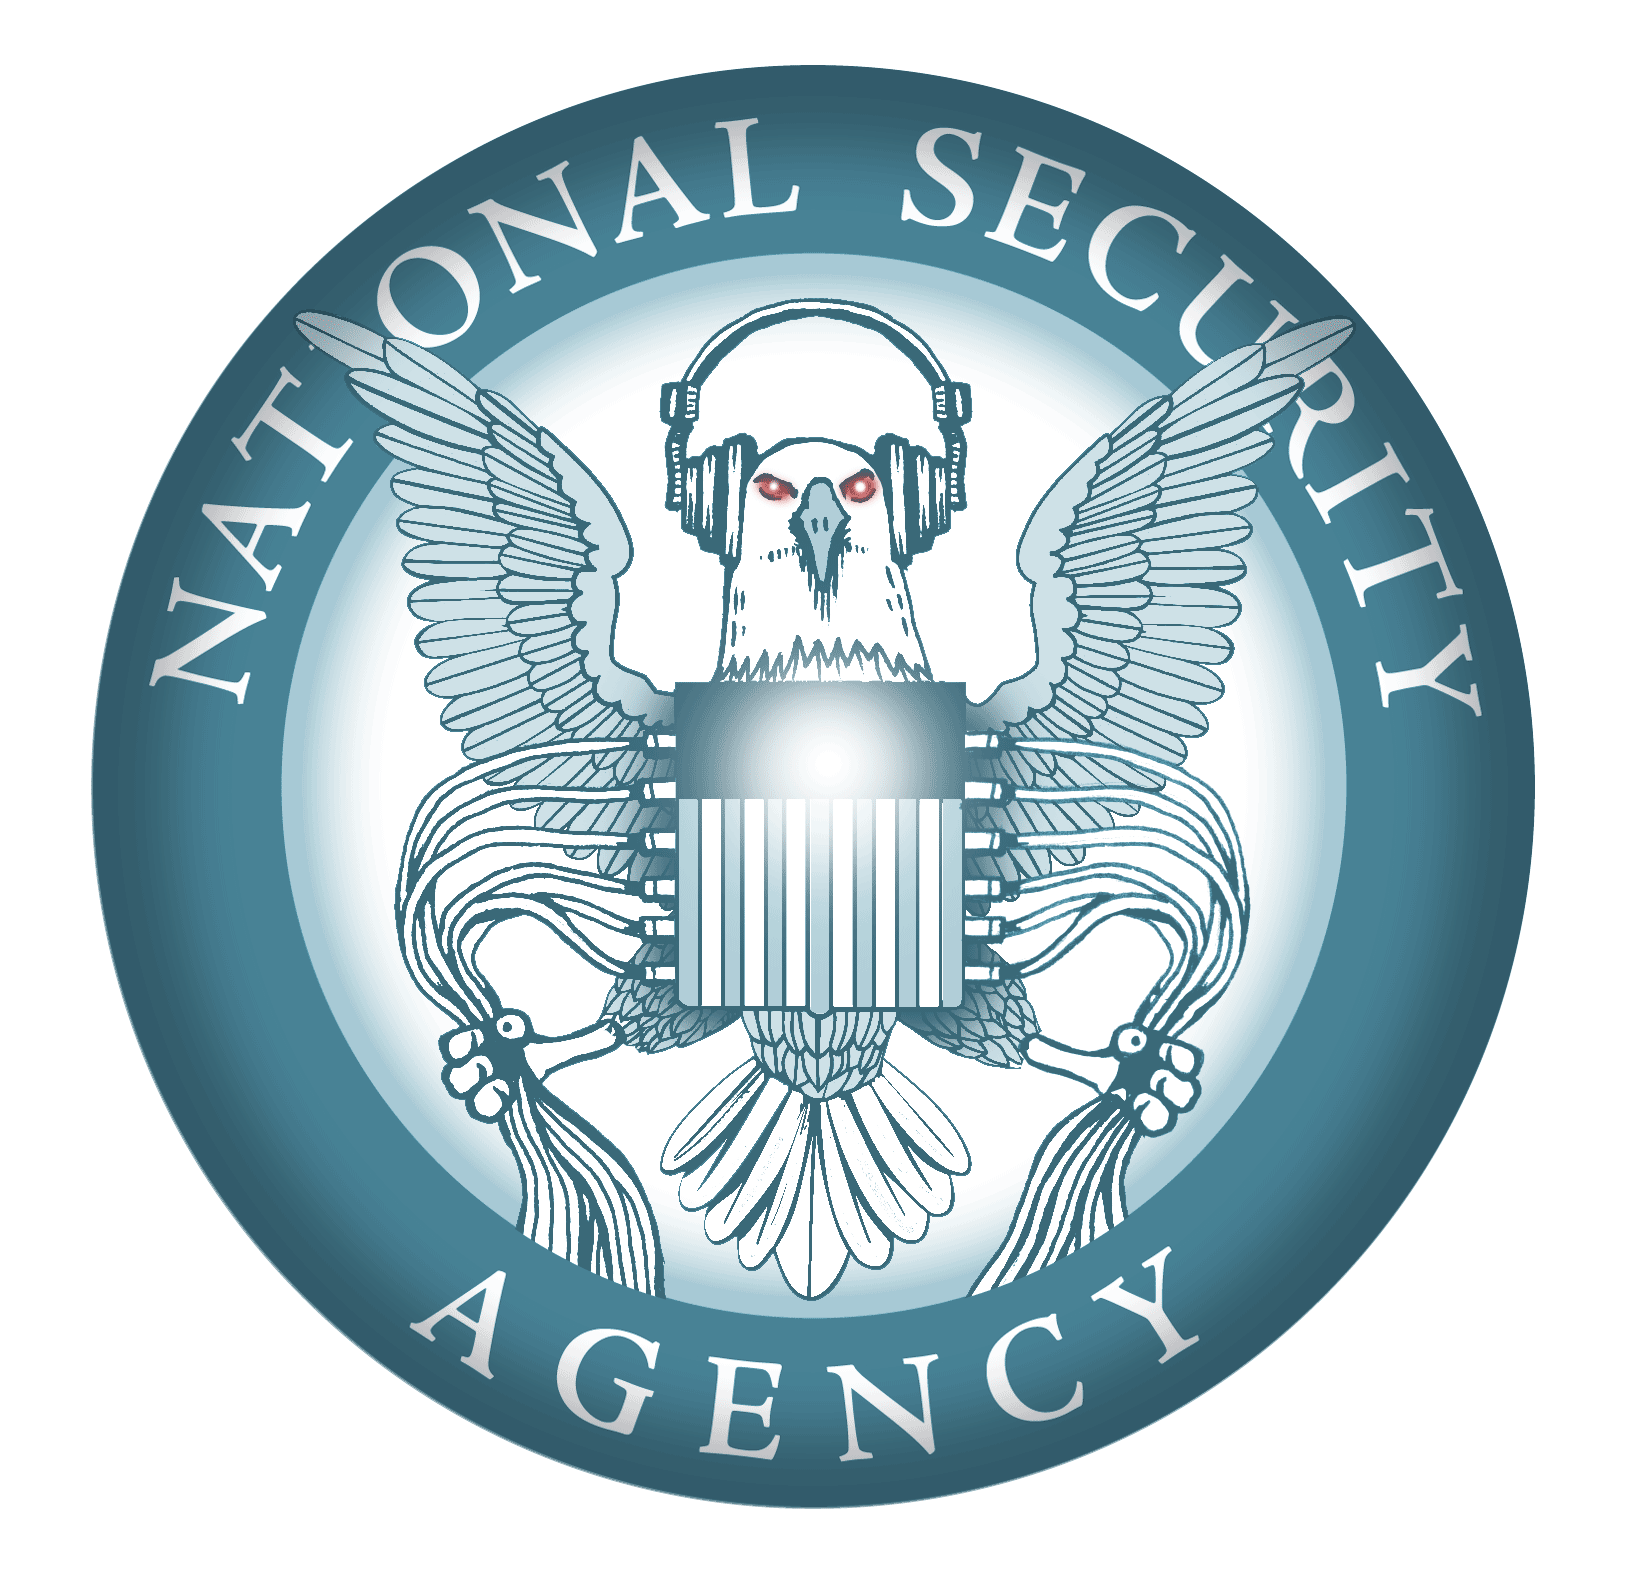 nsa-logo-shield-spoof